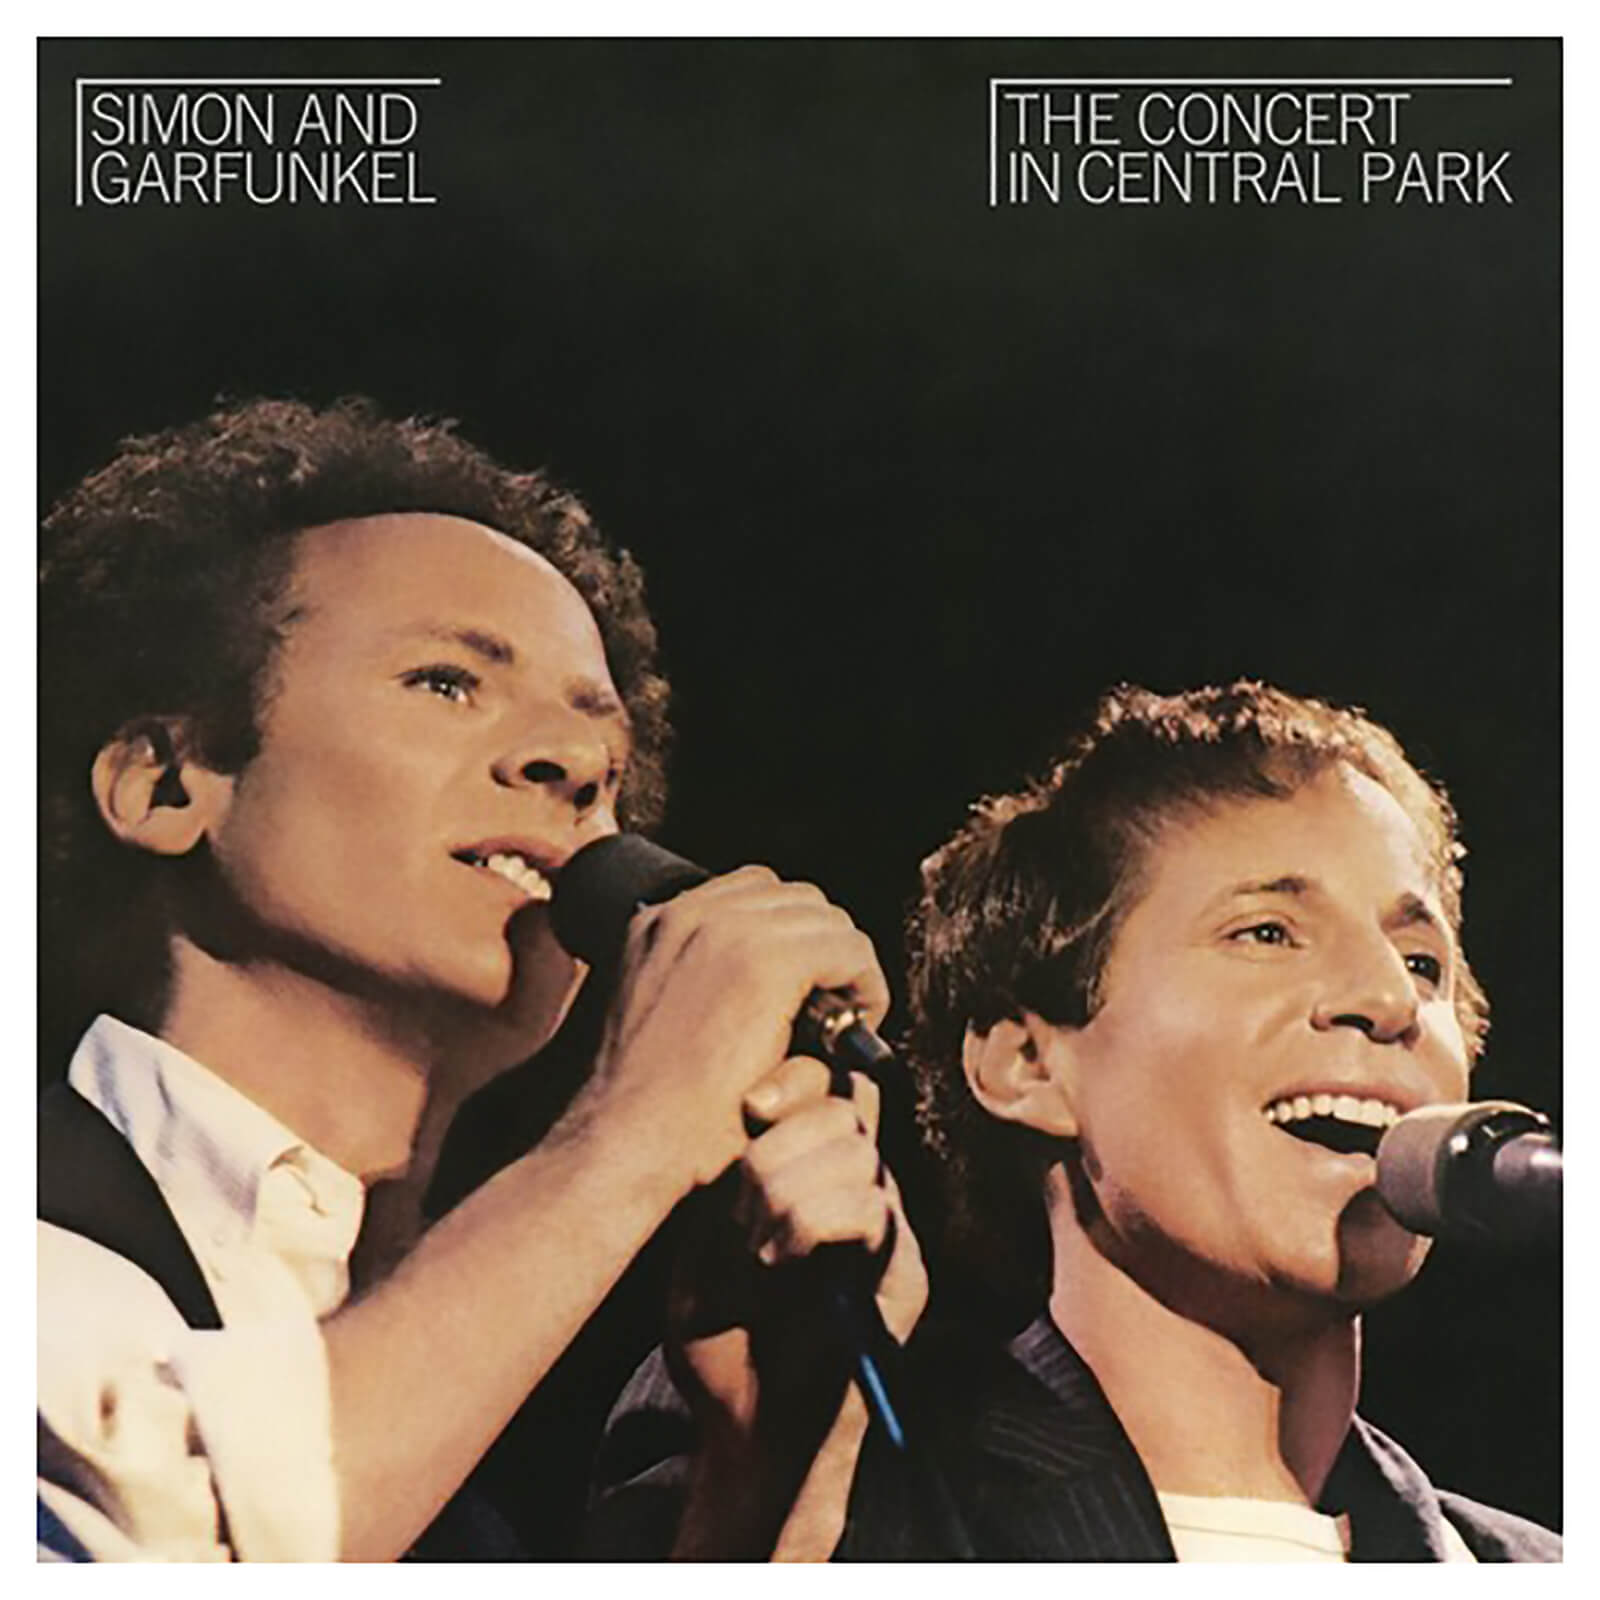 Simon & Garfunkel - Concert In Central Park - Vinyl